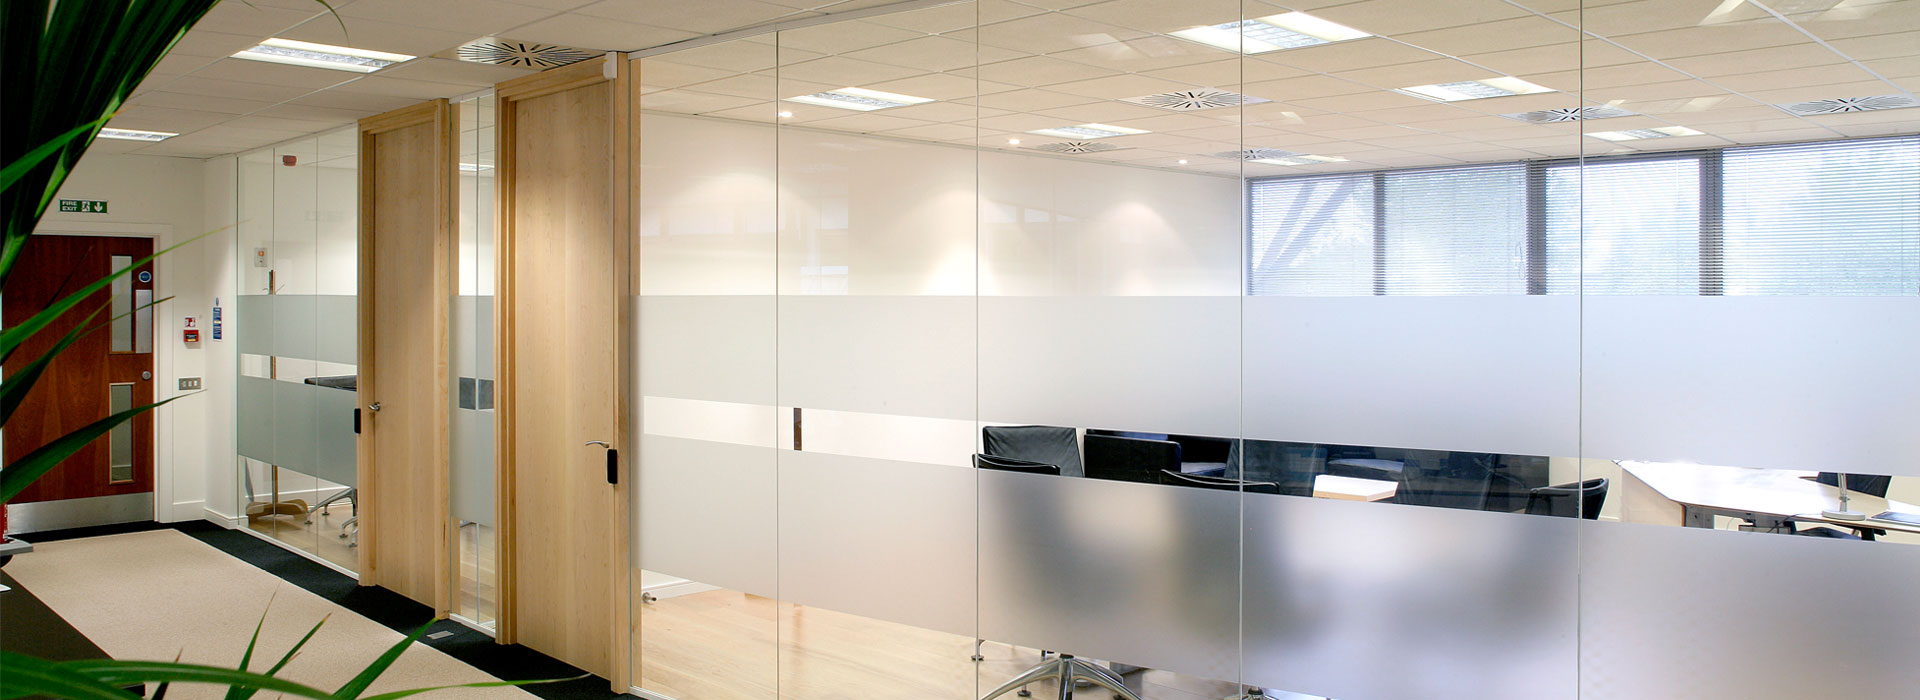 glass walls and doors for commercial interiors and office dividers - Interior Glass Walls For Homes